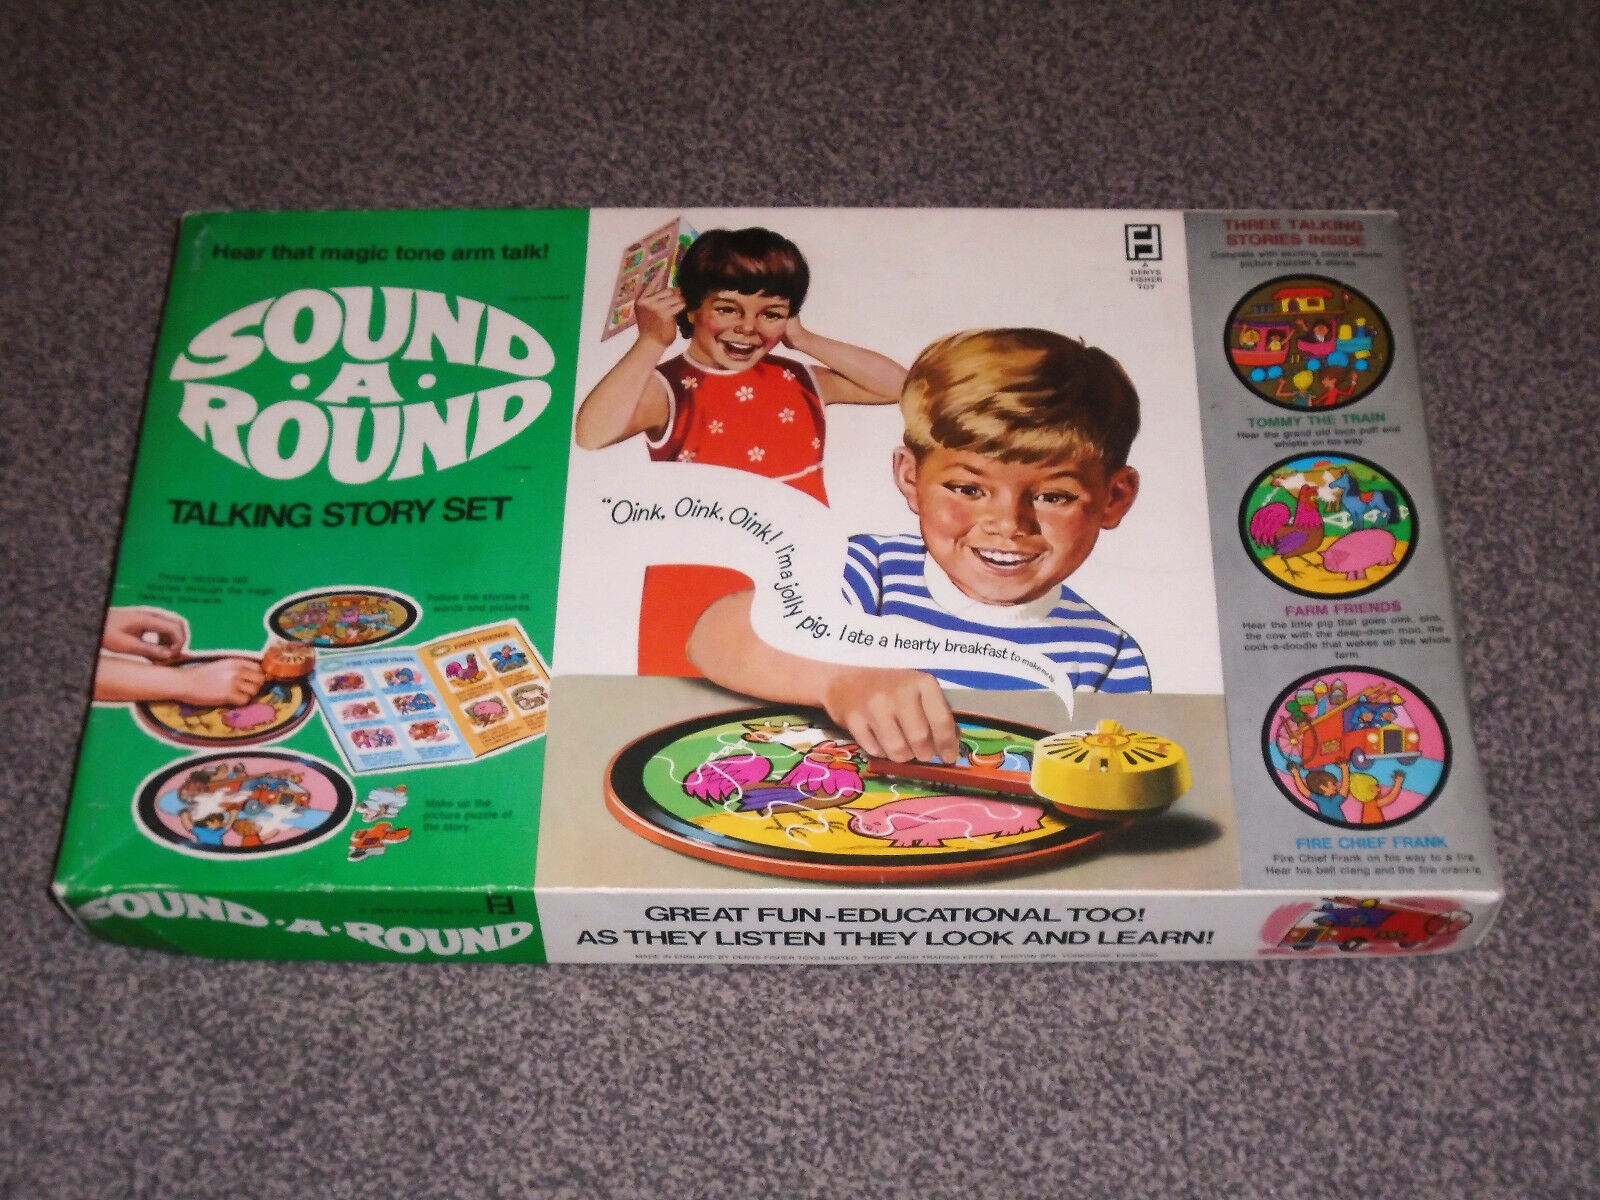 VINTAGE DENYS FISHER   SOUND A ROUND - TALKING STORY SET - IN VGC (FREE UK P&P)